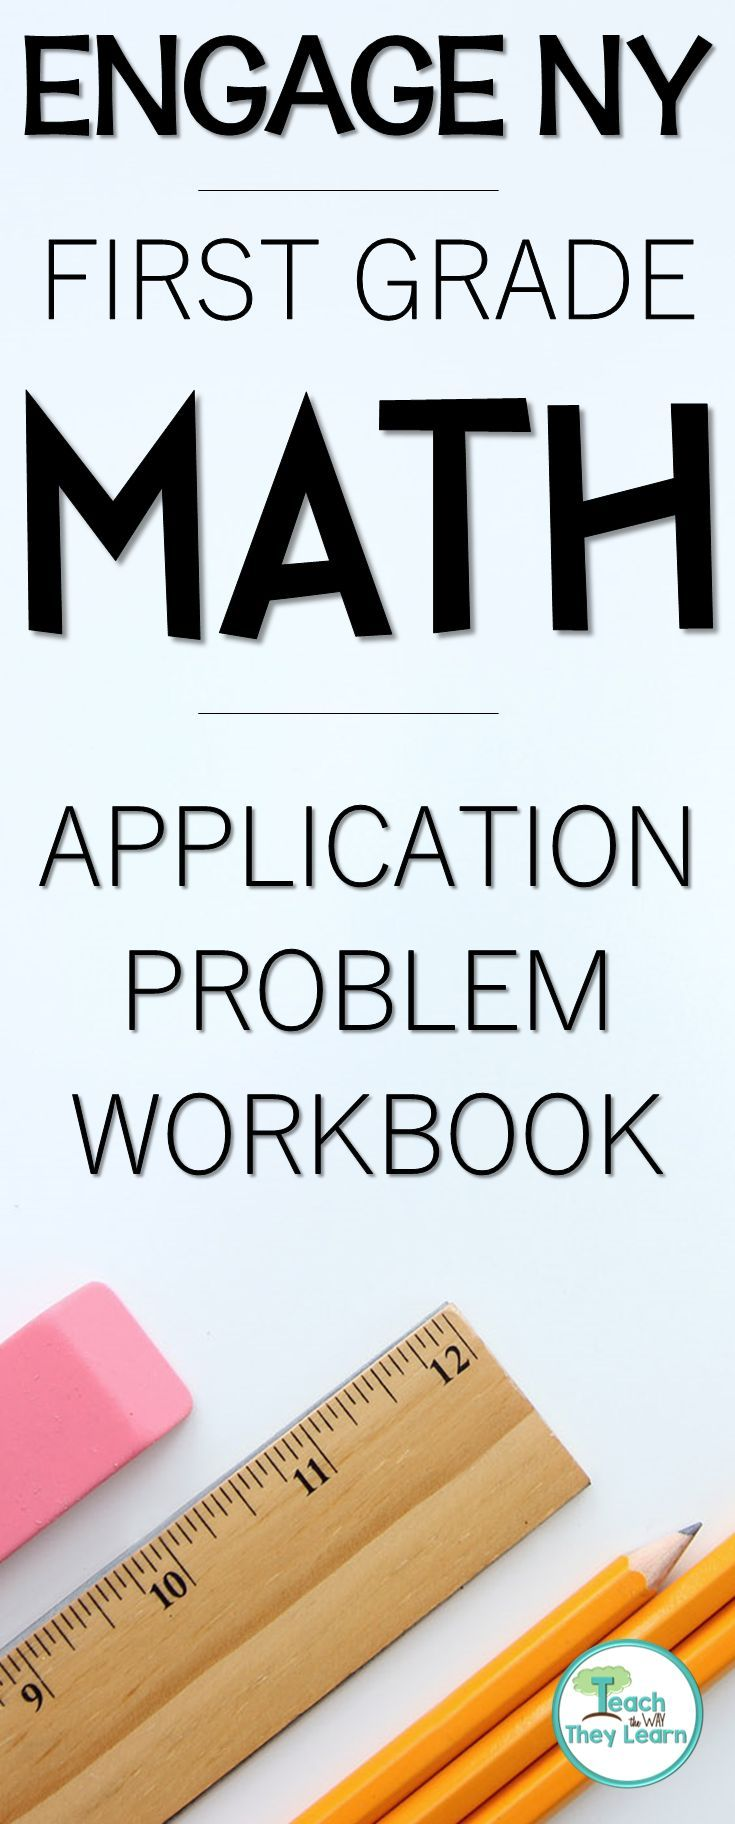 Workbooks 1st grade math workbooks : 386 best 1st Grade Engage NY Math images on Pinterest | Engage ny ...